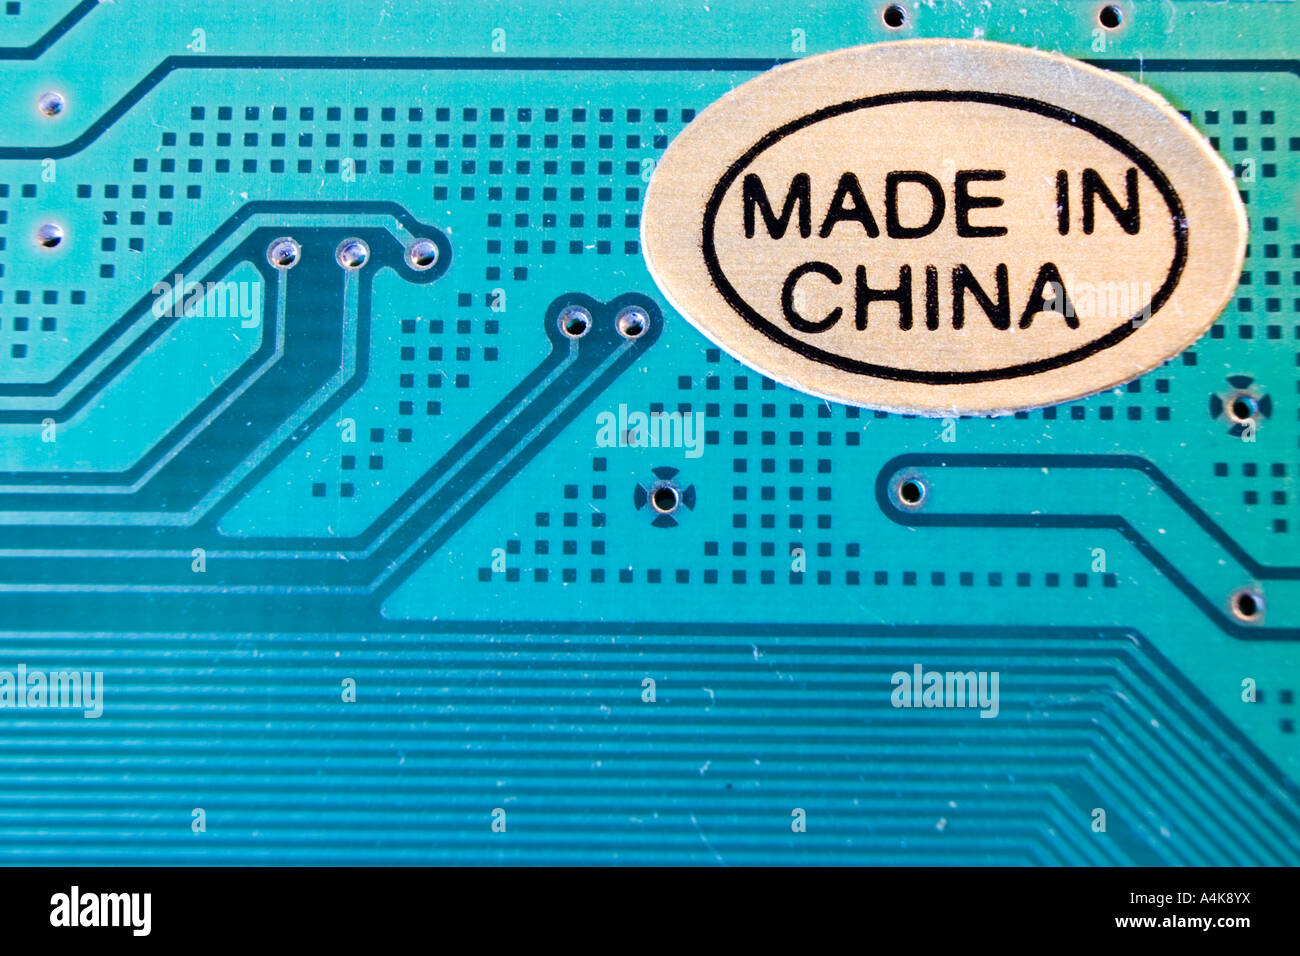 Made In China Sticker On A Printed Circuit Board Stock Photo Catalog